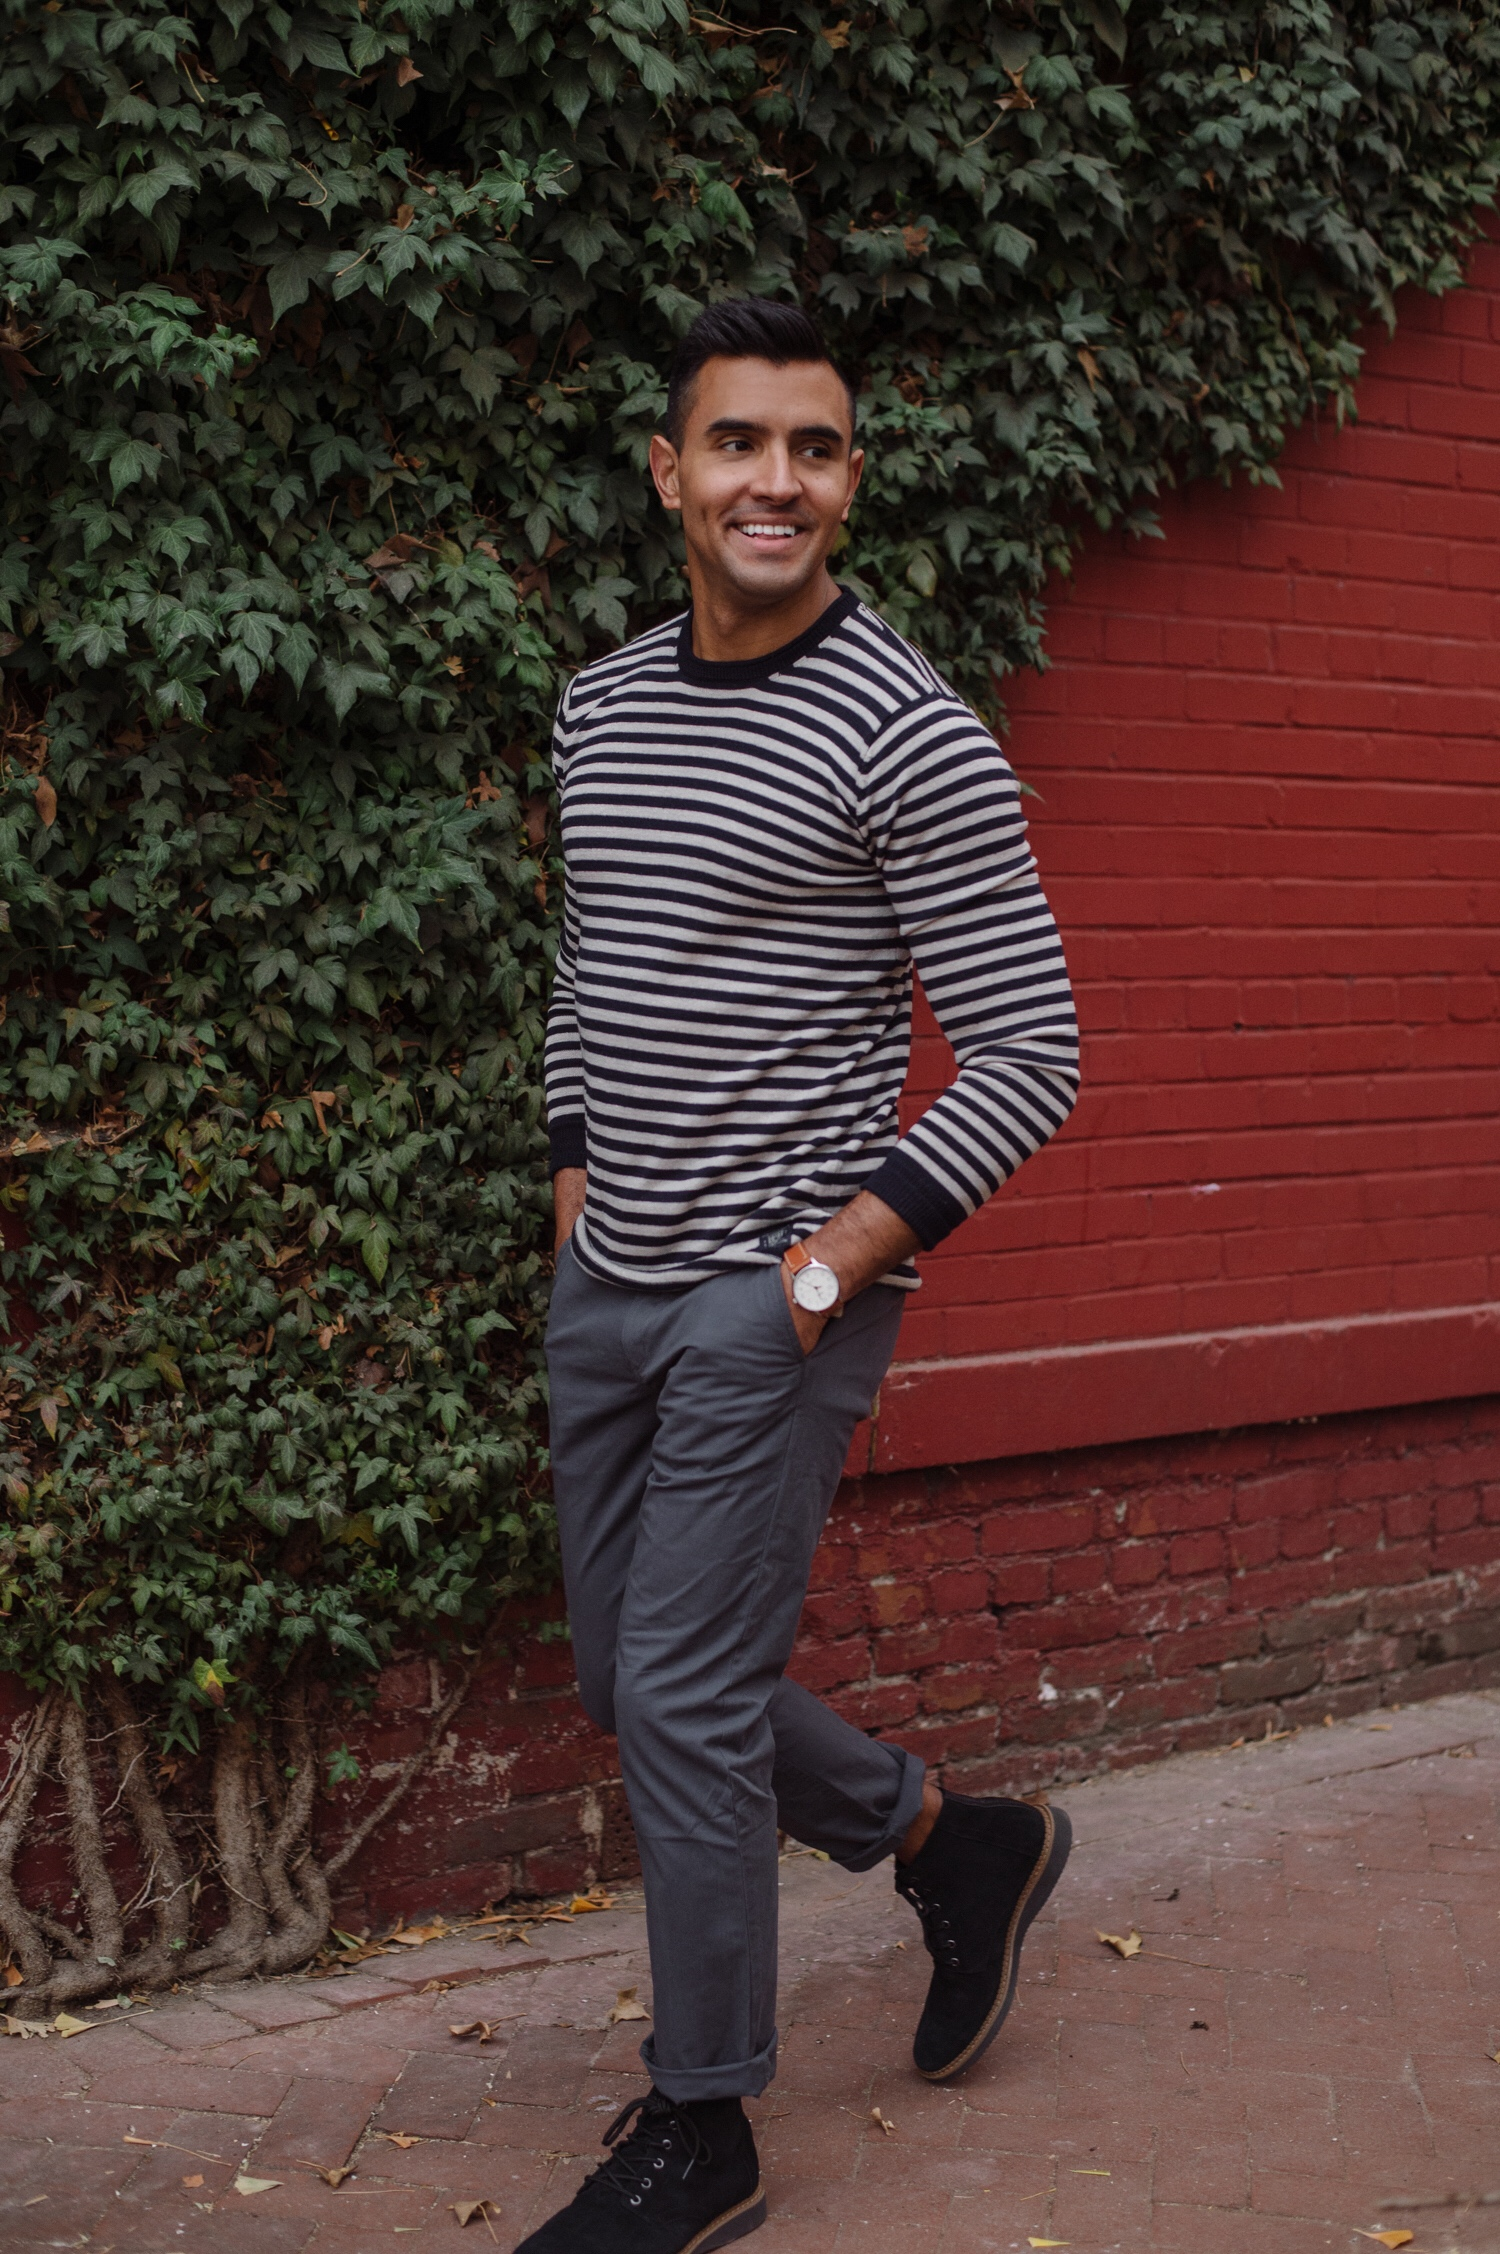 ee4f6e2c27 Diego Downtown - Sweater Weather.jpg